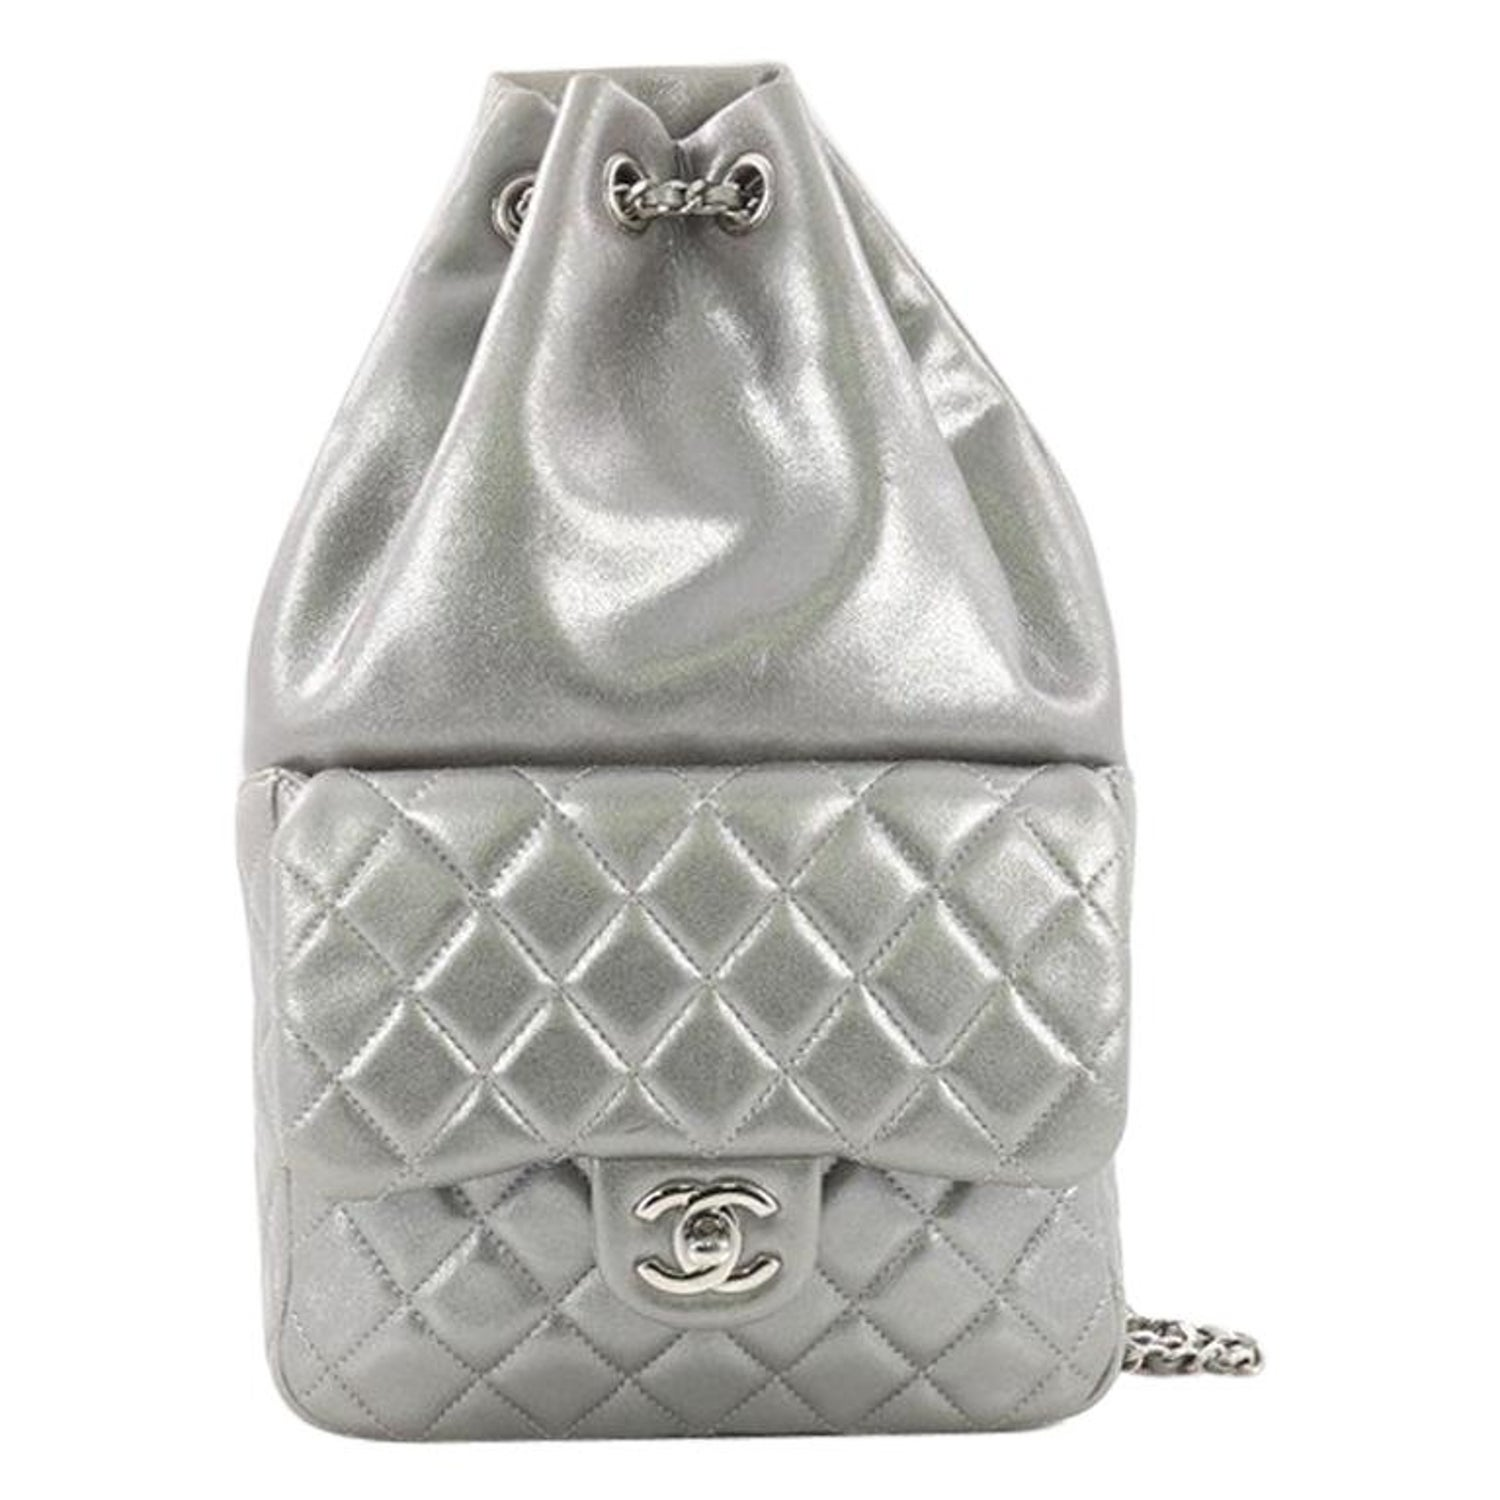 e2f53cbc0b1bbc Chanel Backpack In Seoul Lambskin Small at 1stdibs